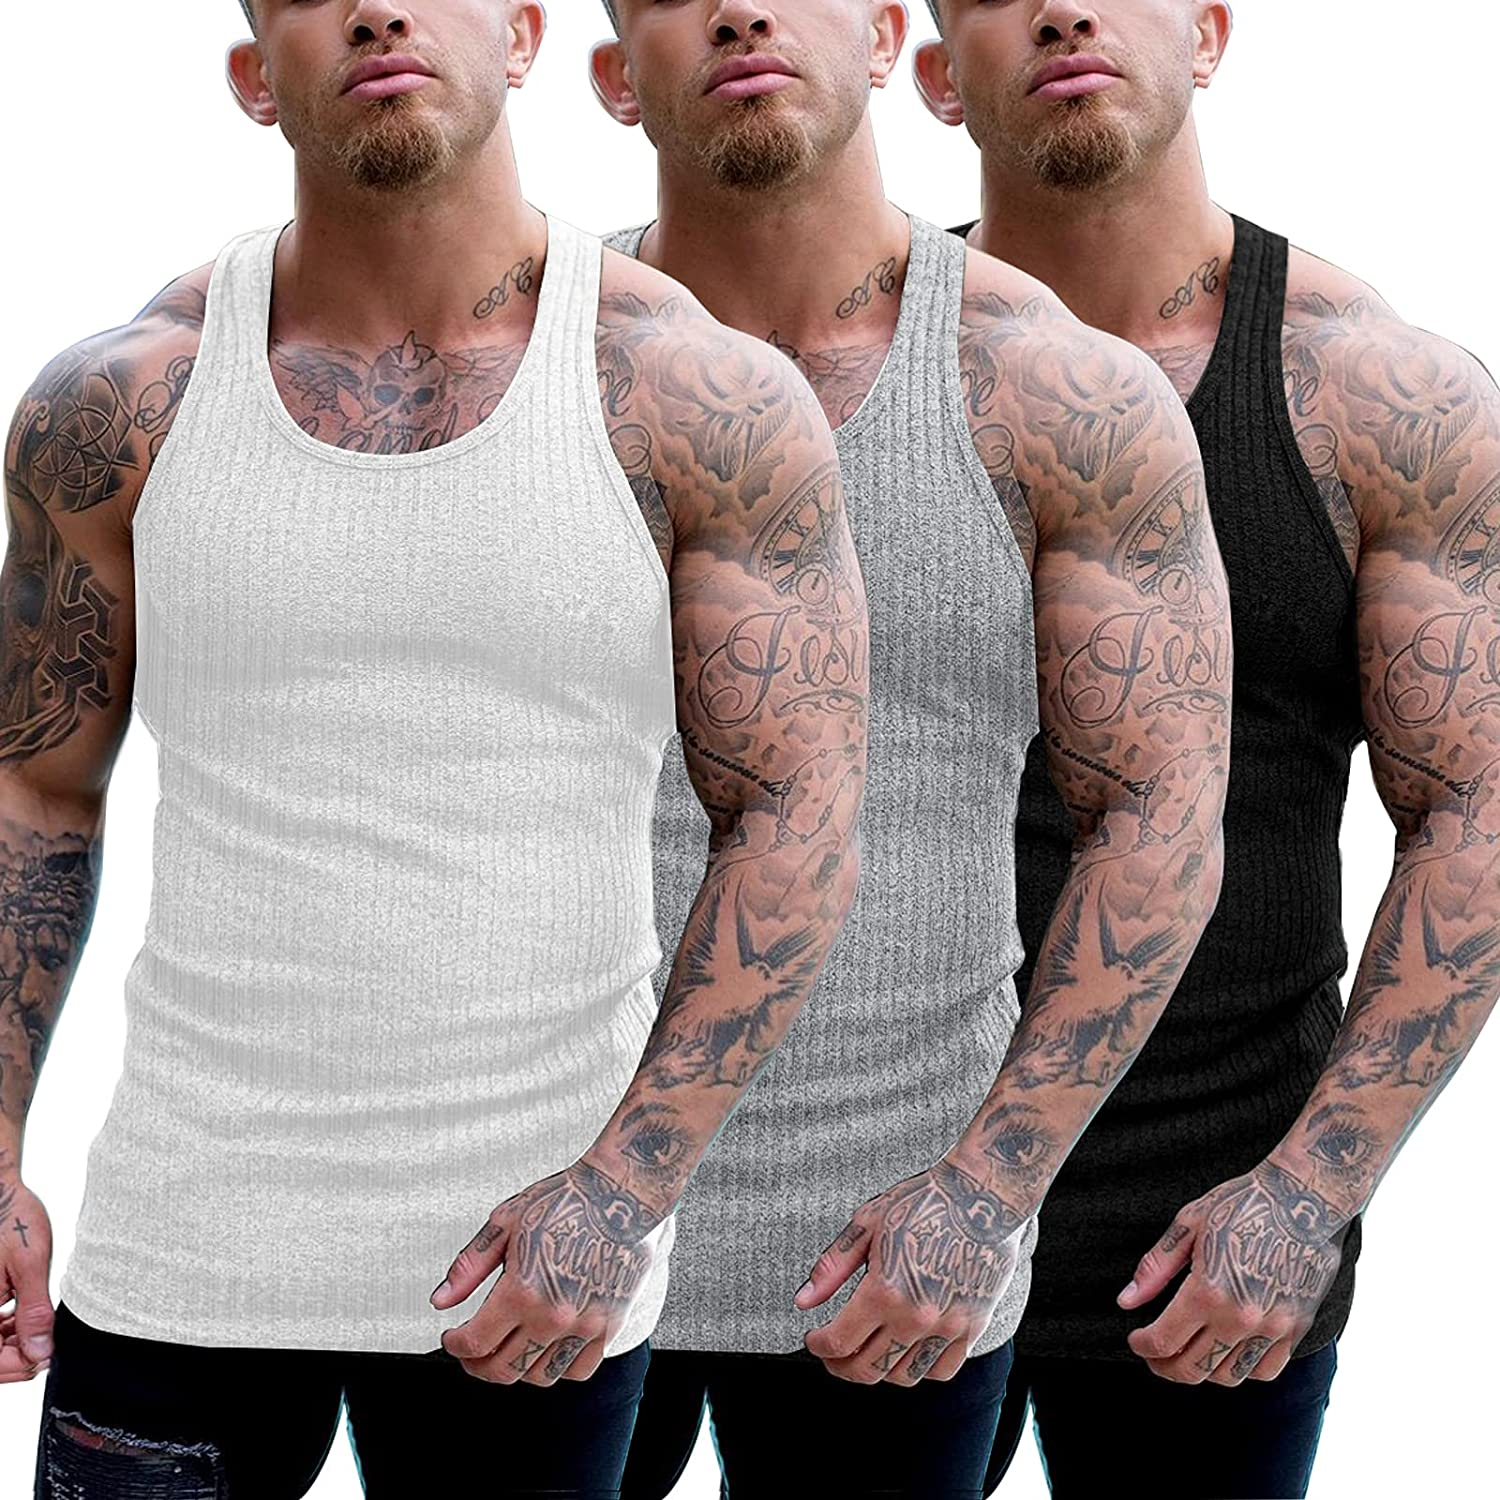 COOFANDY Men's 3 Be super welcome Pack Ribbed Ca Sleeveless Tops Tank At the price Shirts